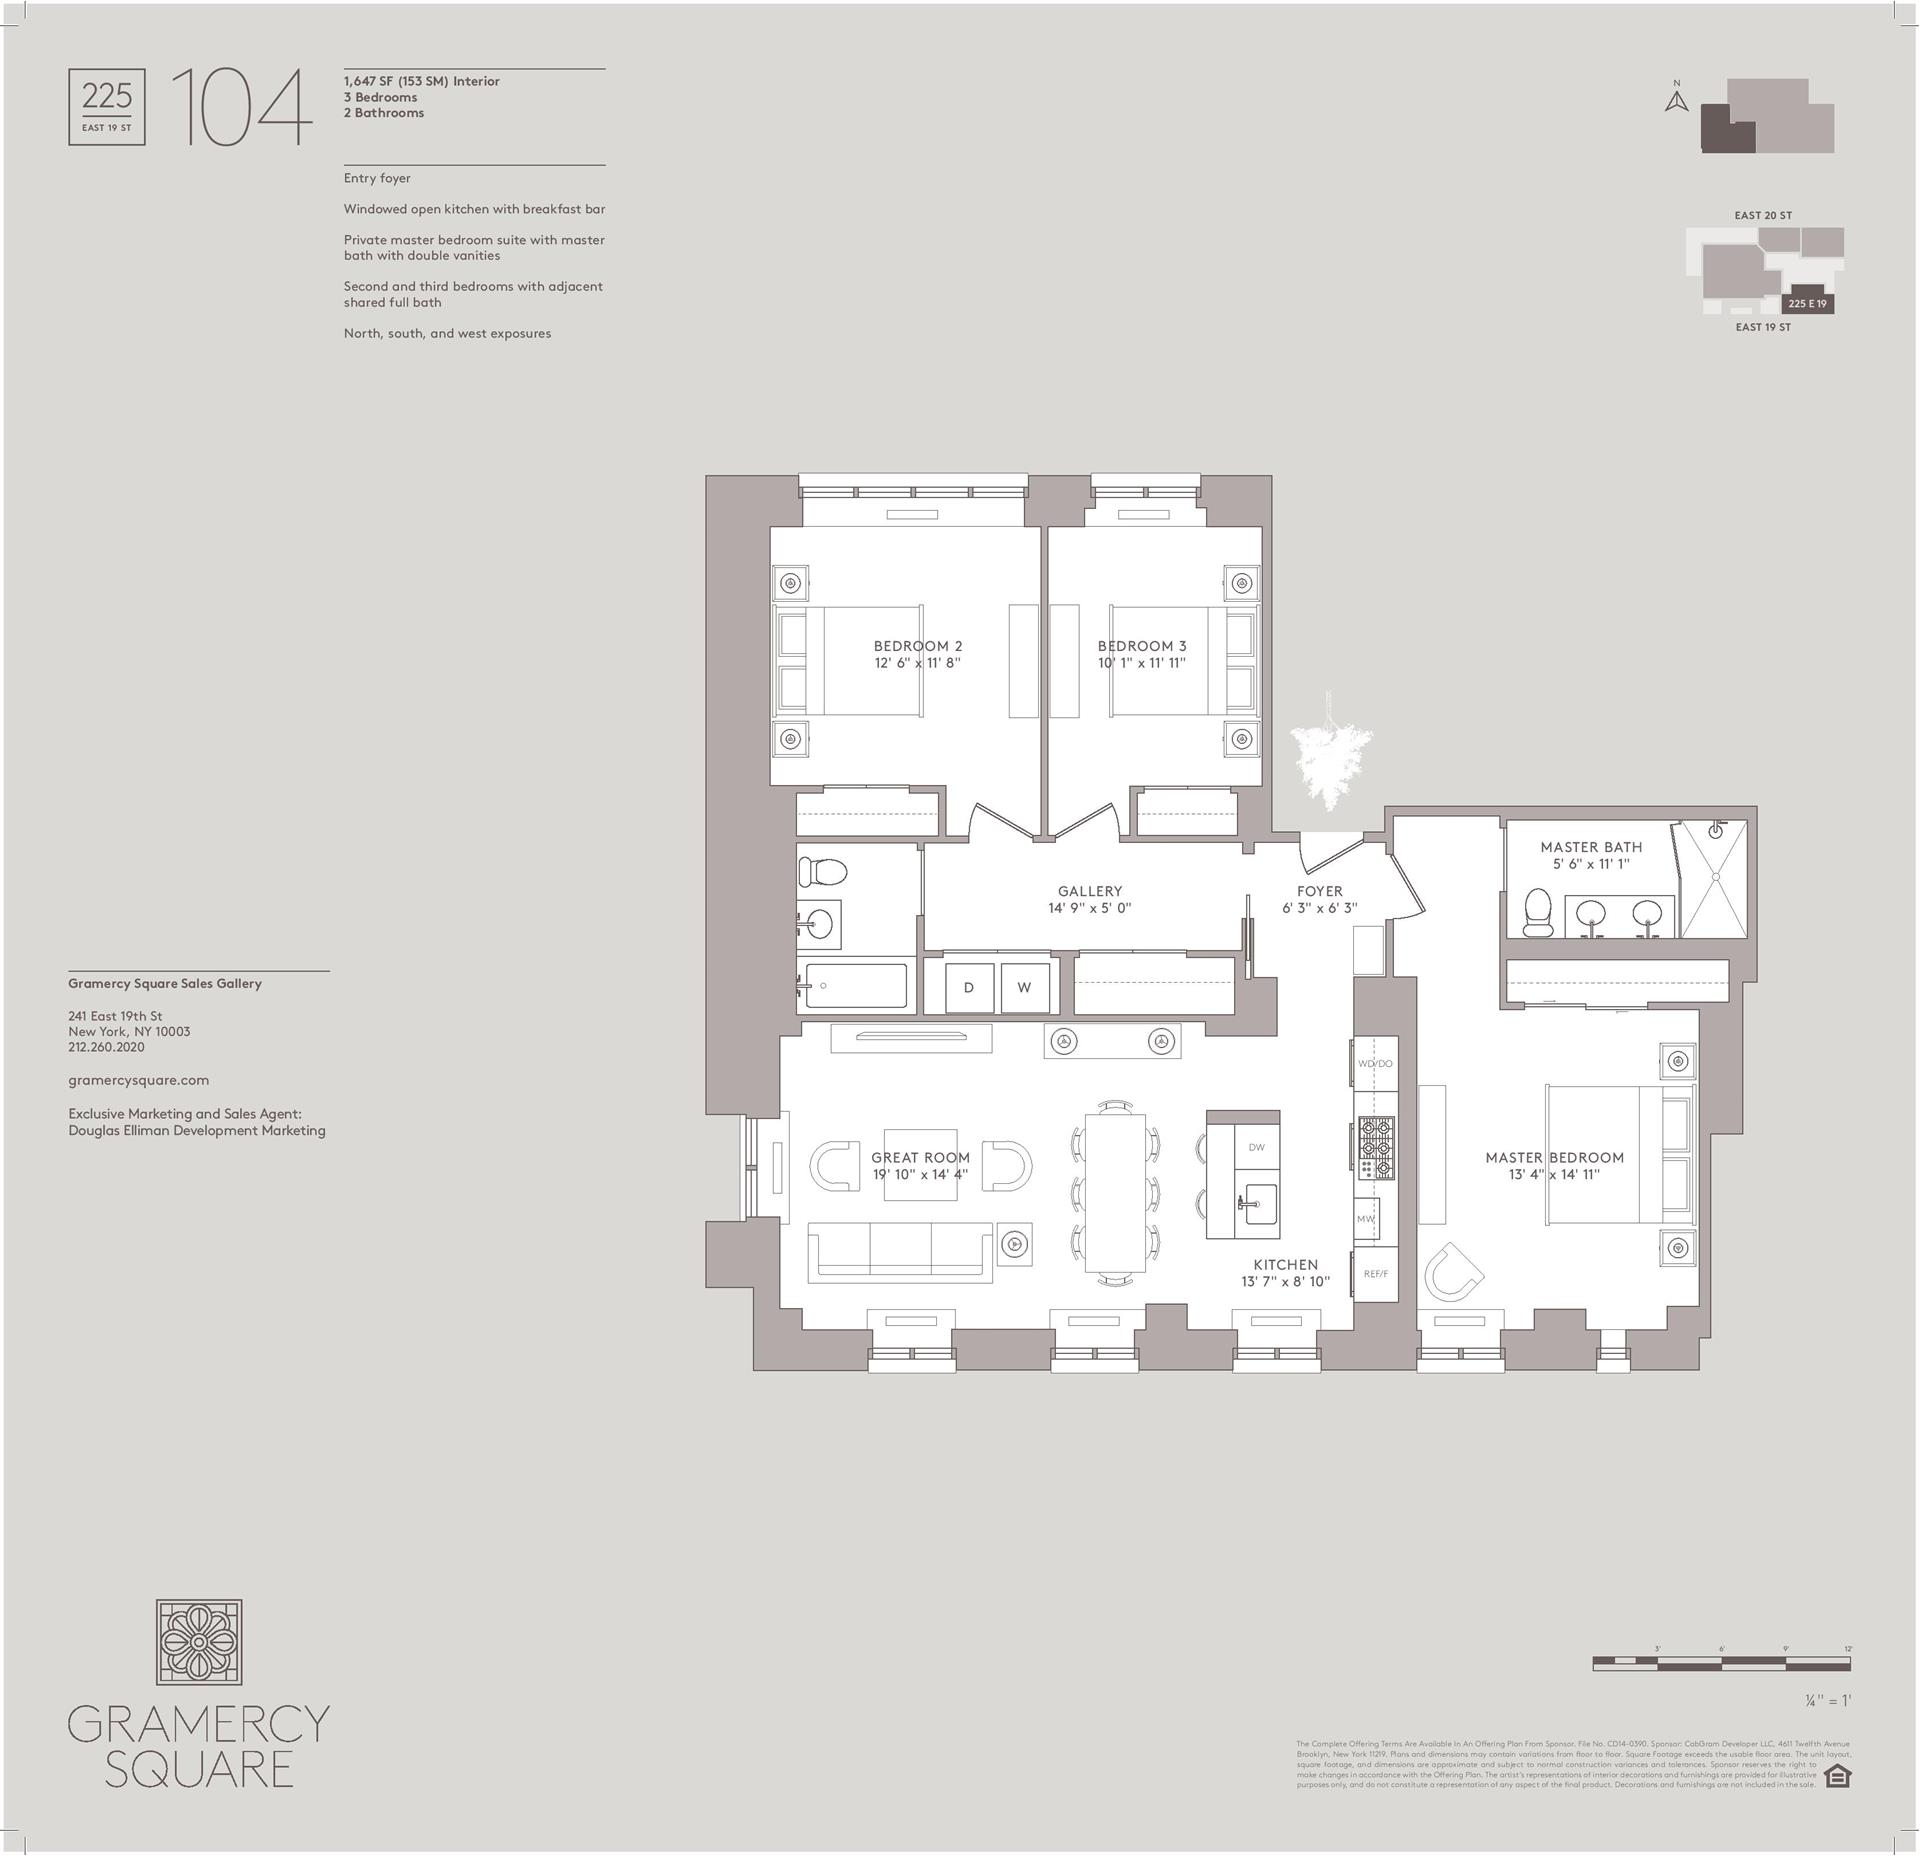 Floor plan of Gramercy Square, 225 East 19th St, 104 - Gramercy - Union Square, New York